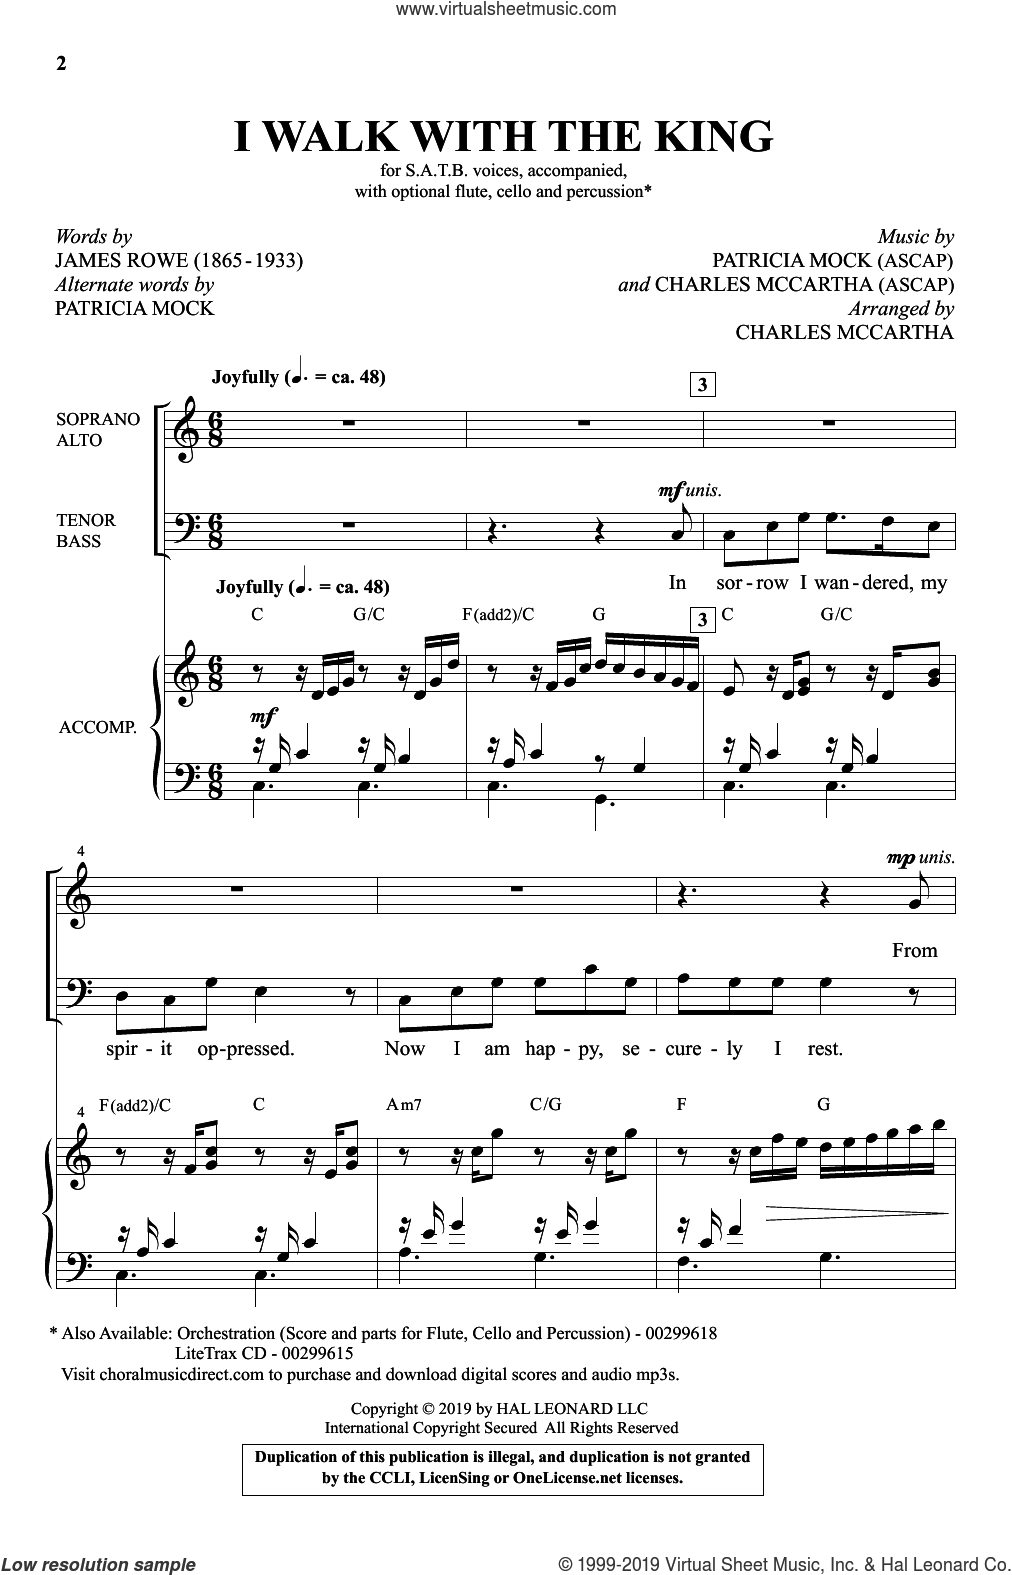 I Walk With The King sheet music for choir (SATB: soprano, alto, tenor, bass) by Patricia Mock, Charles McCartha, James Rowe and James Rowe, Patricia Mock and Charles McCartha, intermediate skill level